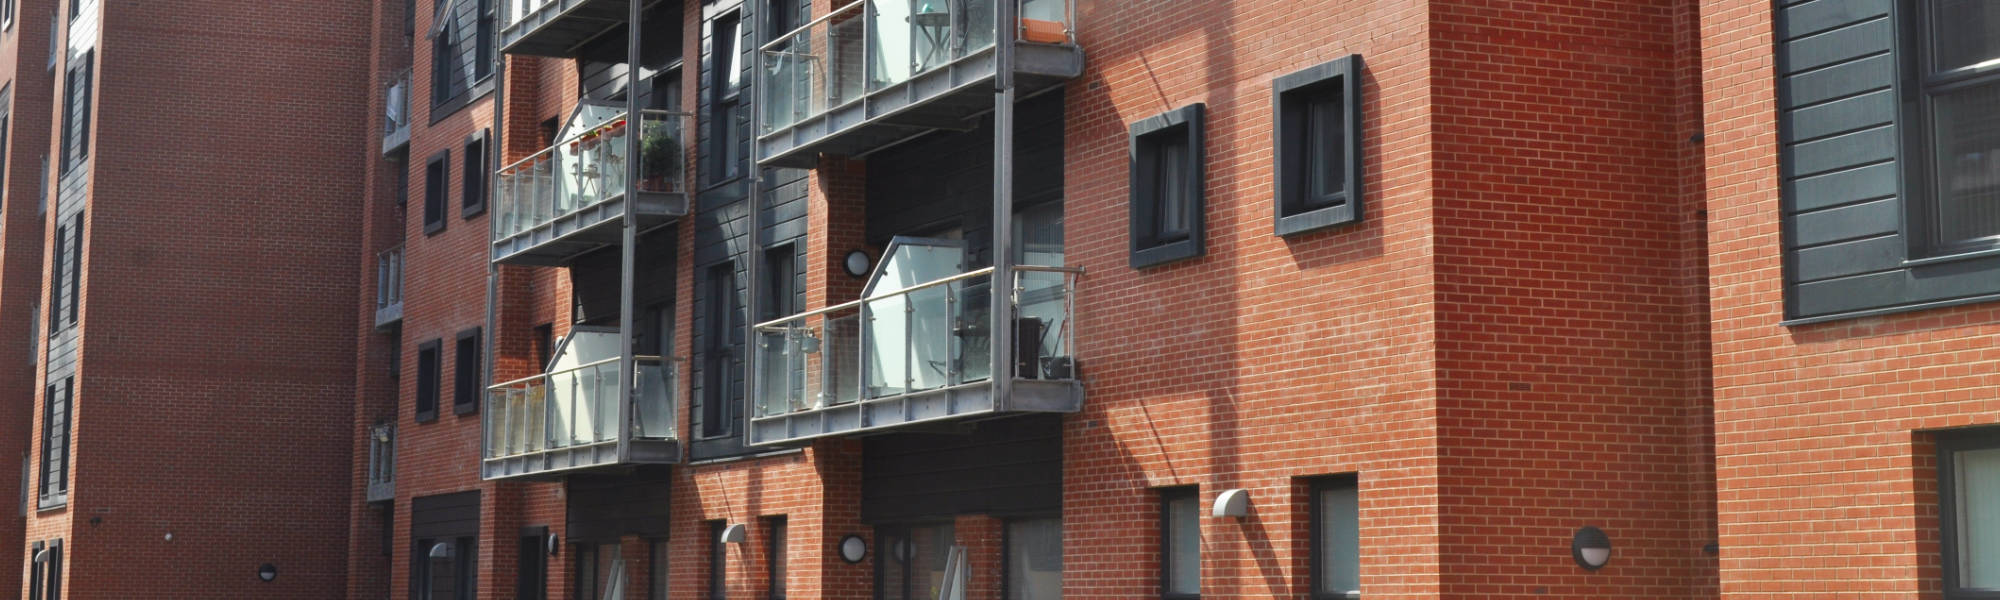 The external wall units were designed by PCE to incorporate cast in channels which the bricklayer fixes steel angles to